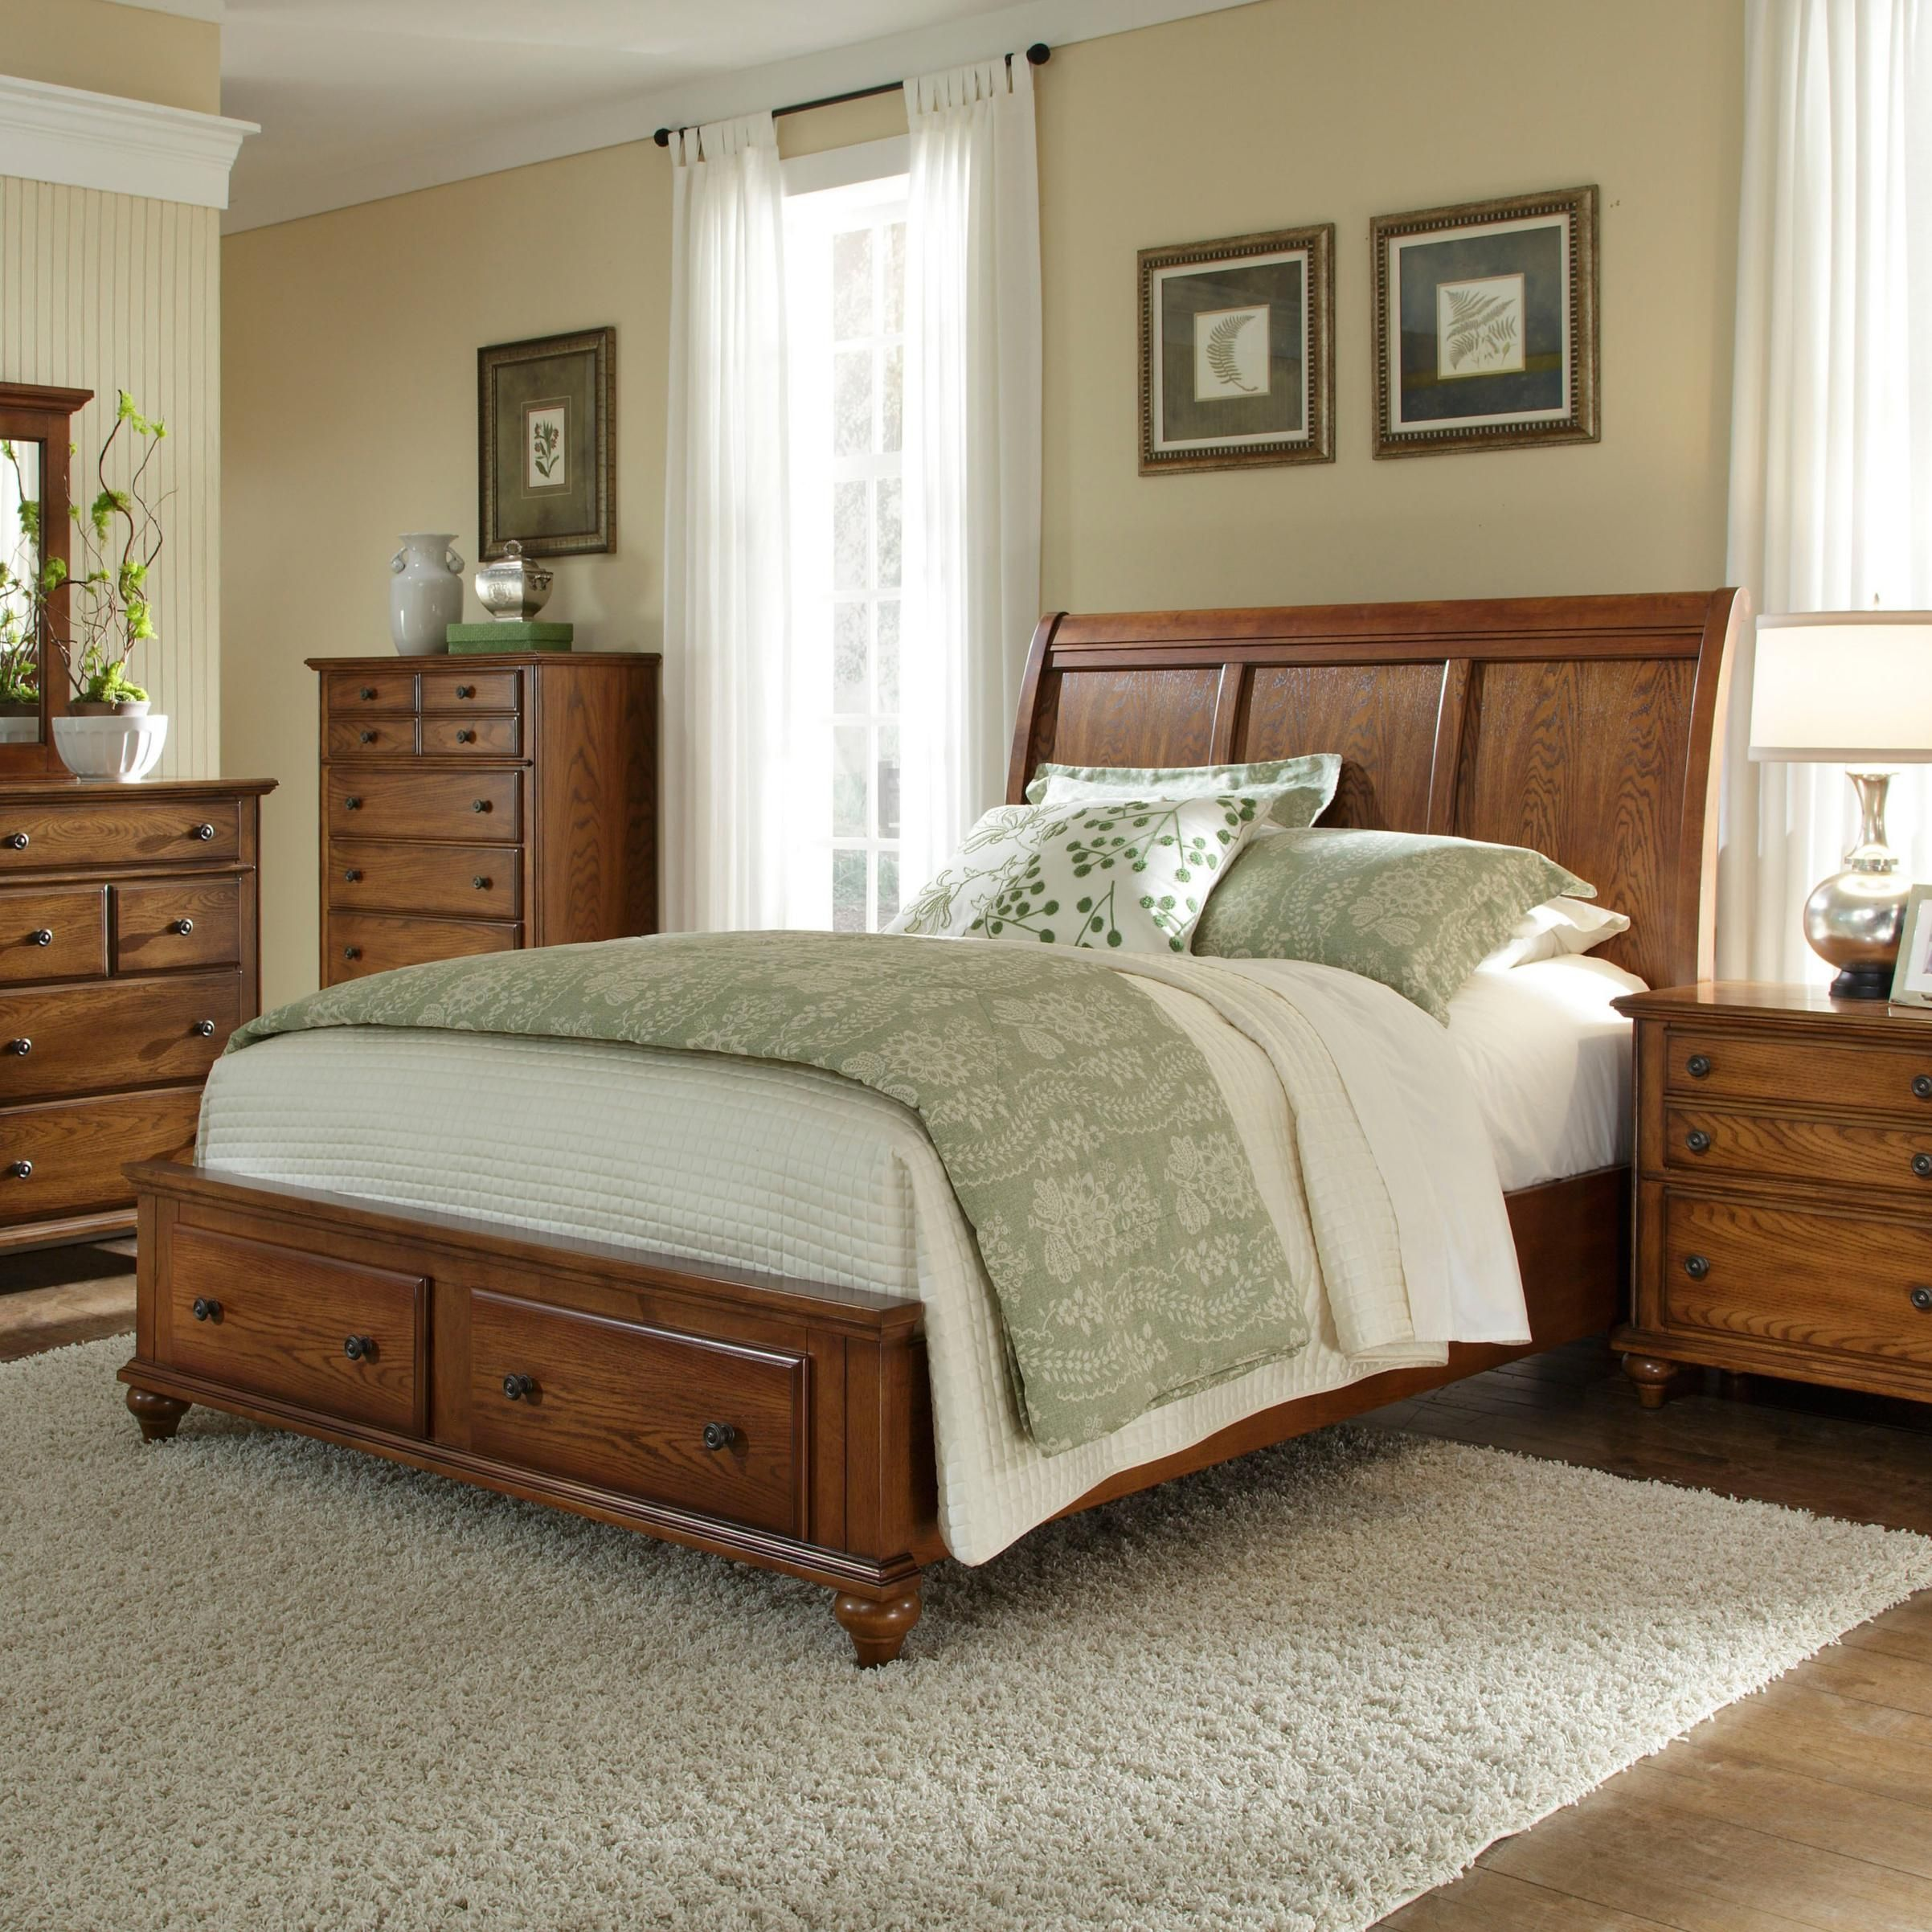 Hayden Place King Sleigh Bed with Storage Footboard by Broyhill